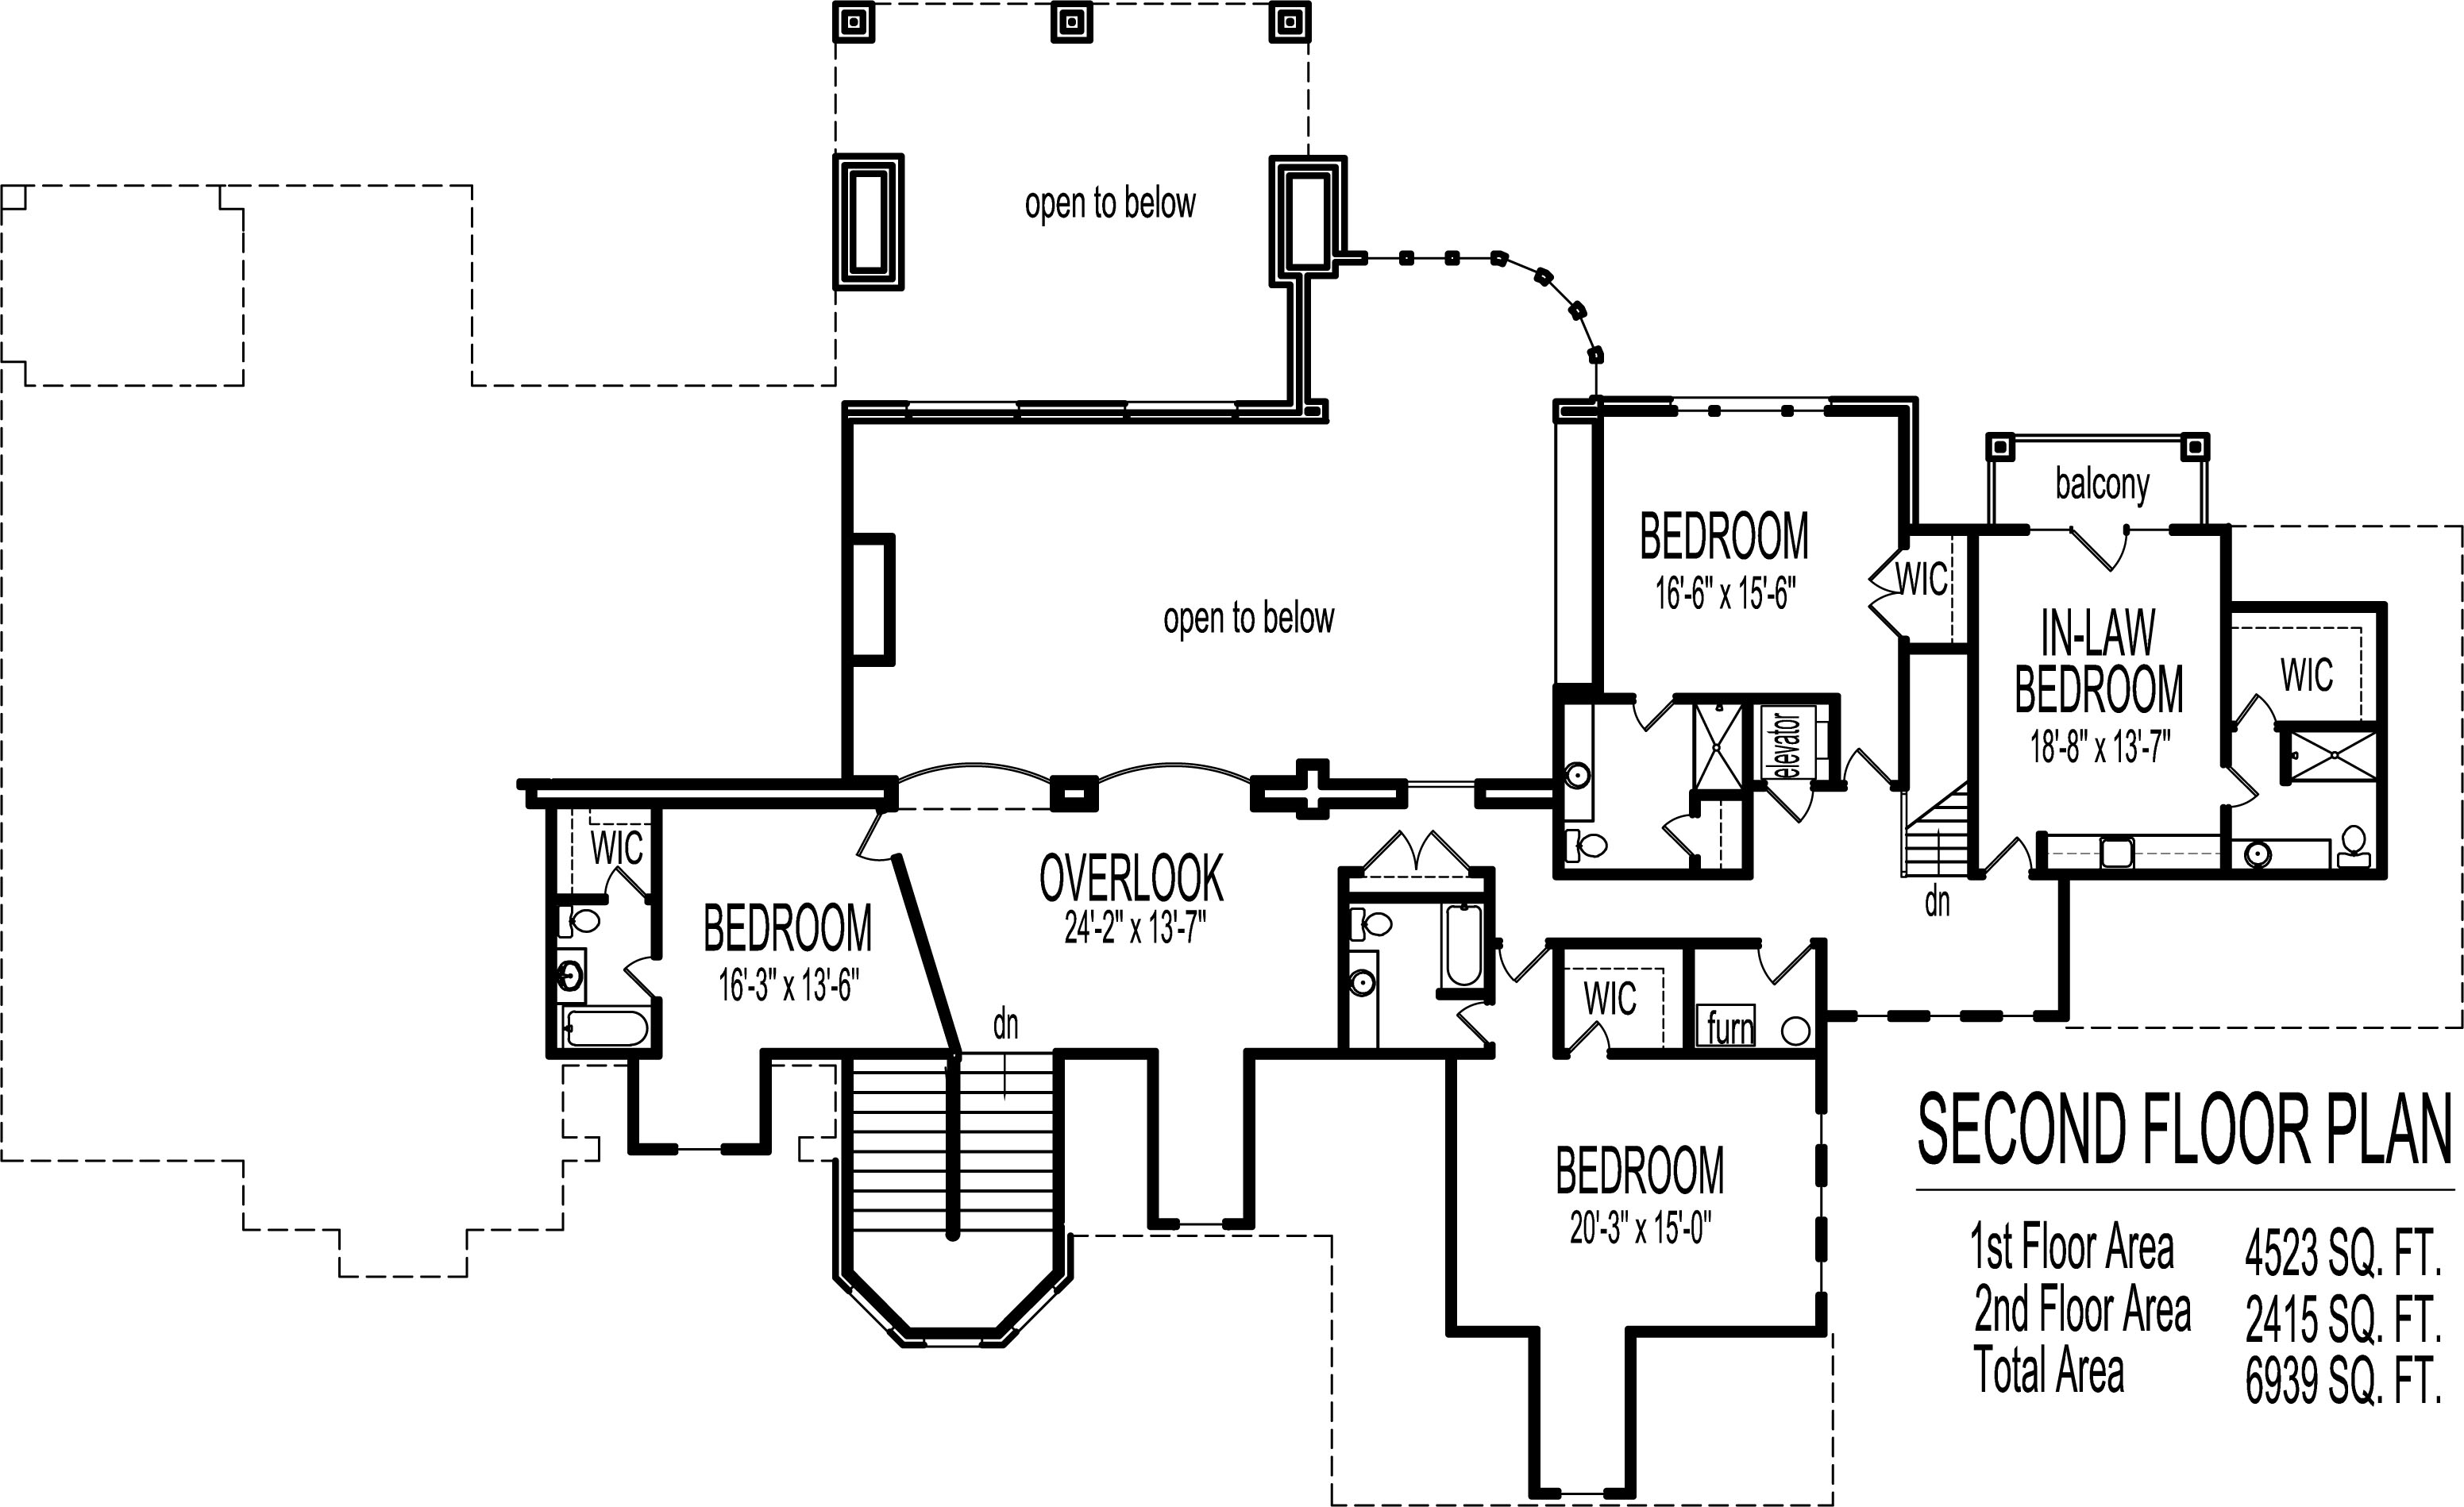 Dream house floor plans blueprints 2 story 5 bedroom large for Dream house plans